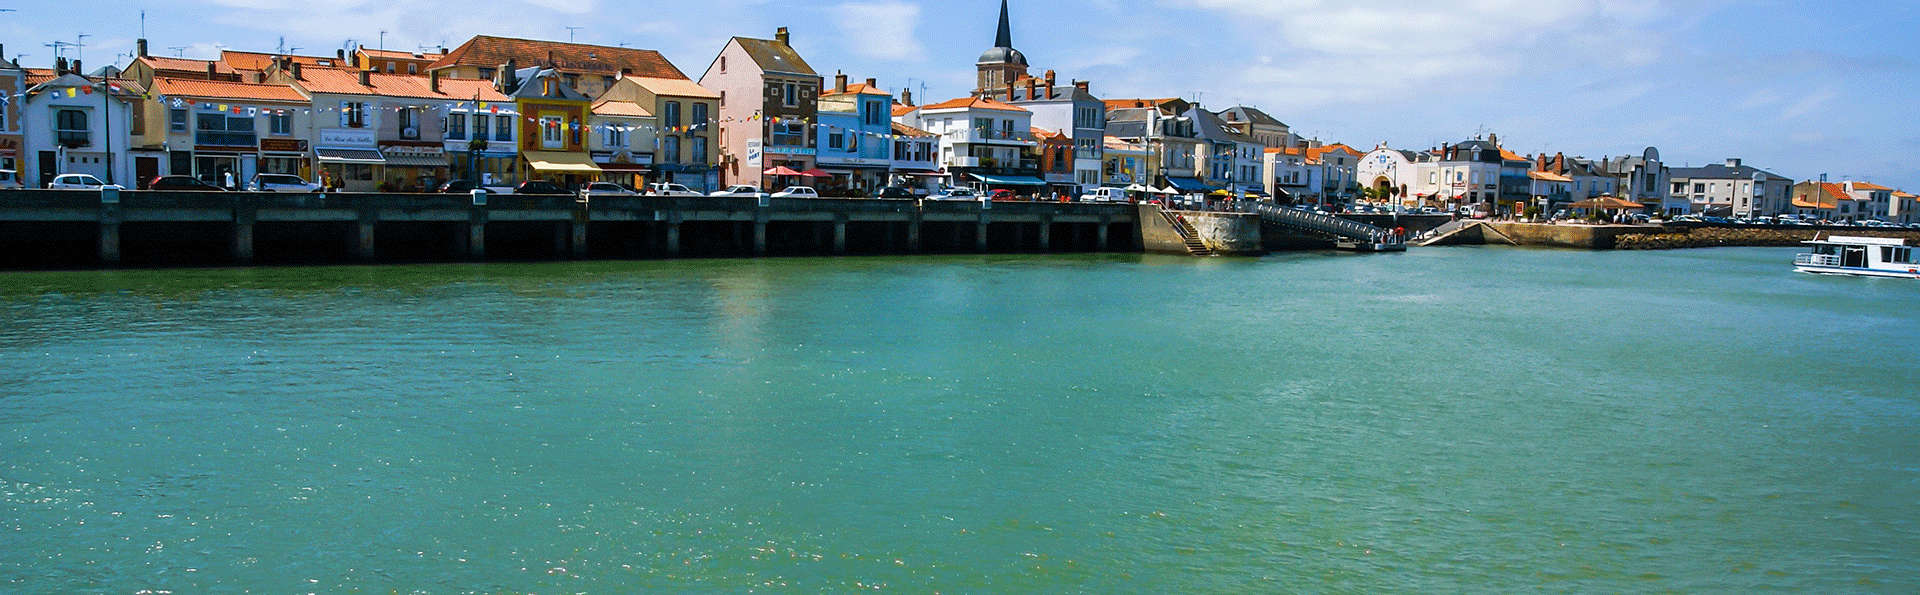 Kyriad Les Sables d'Olonne - Plage - Edit_Destination.jpg